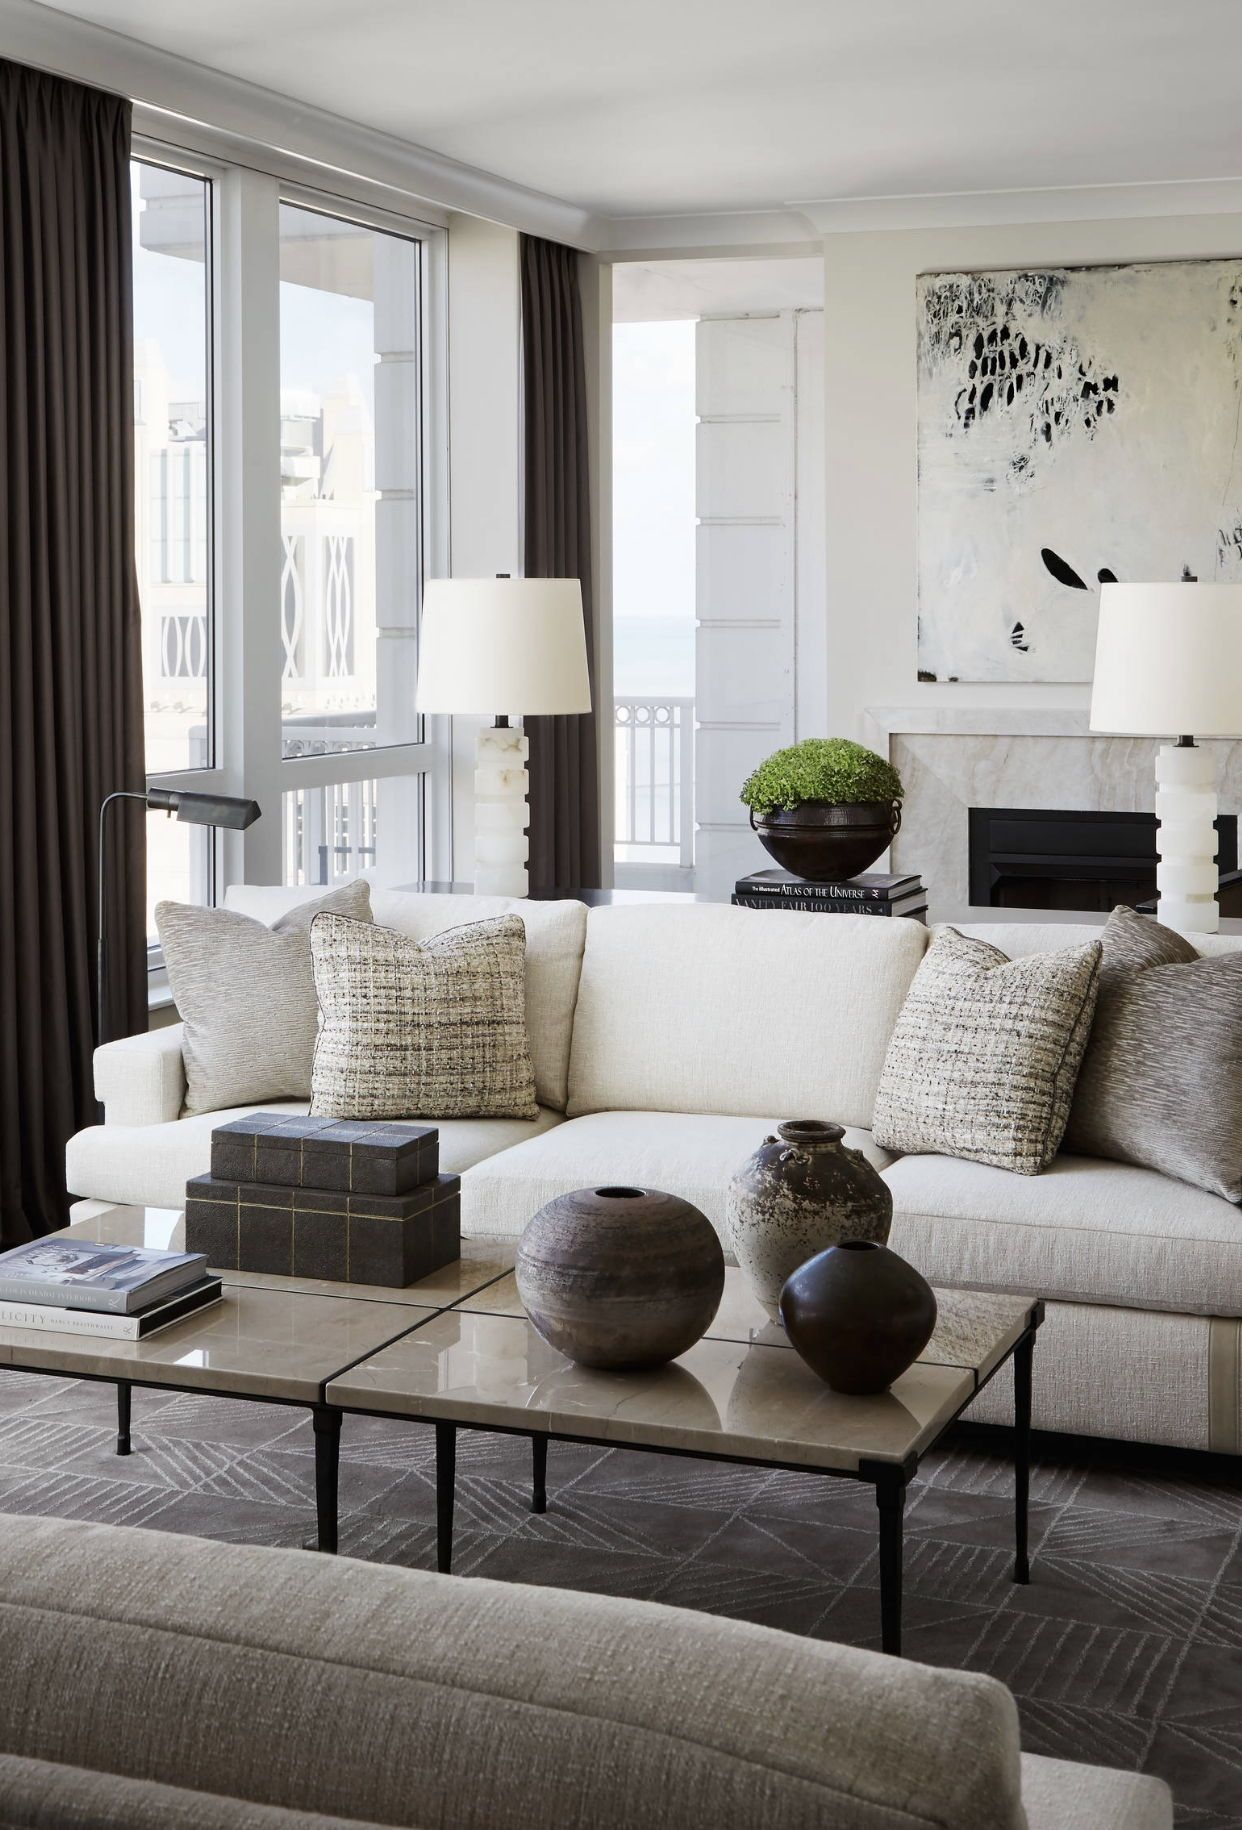 Staging Tip 1 Make The Room Look Larger By Hang Curtains Or